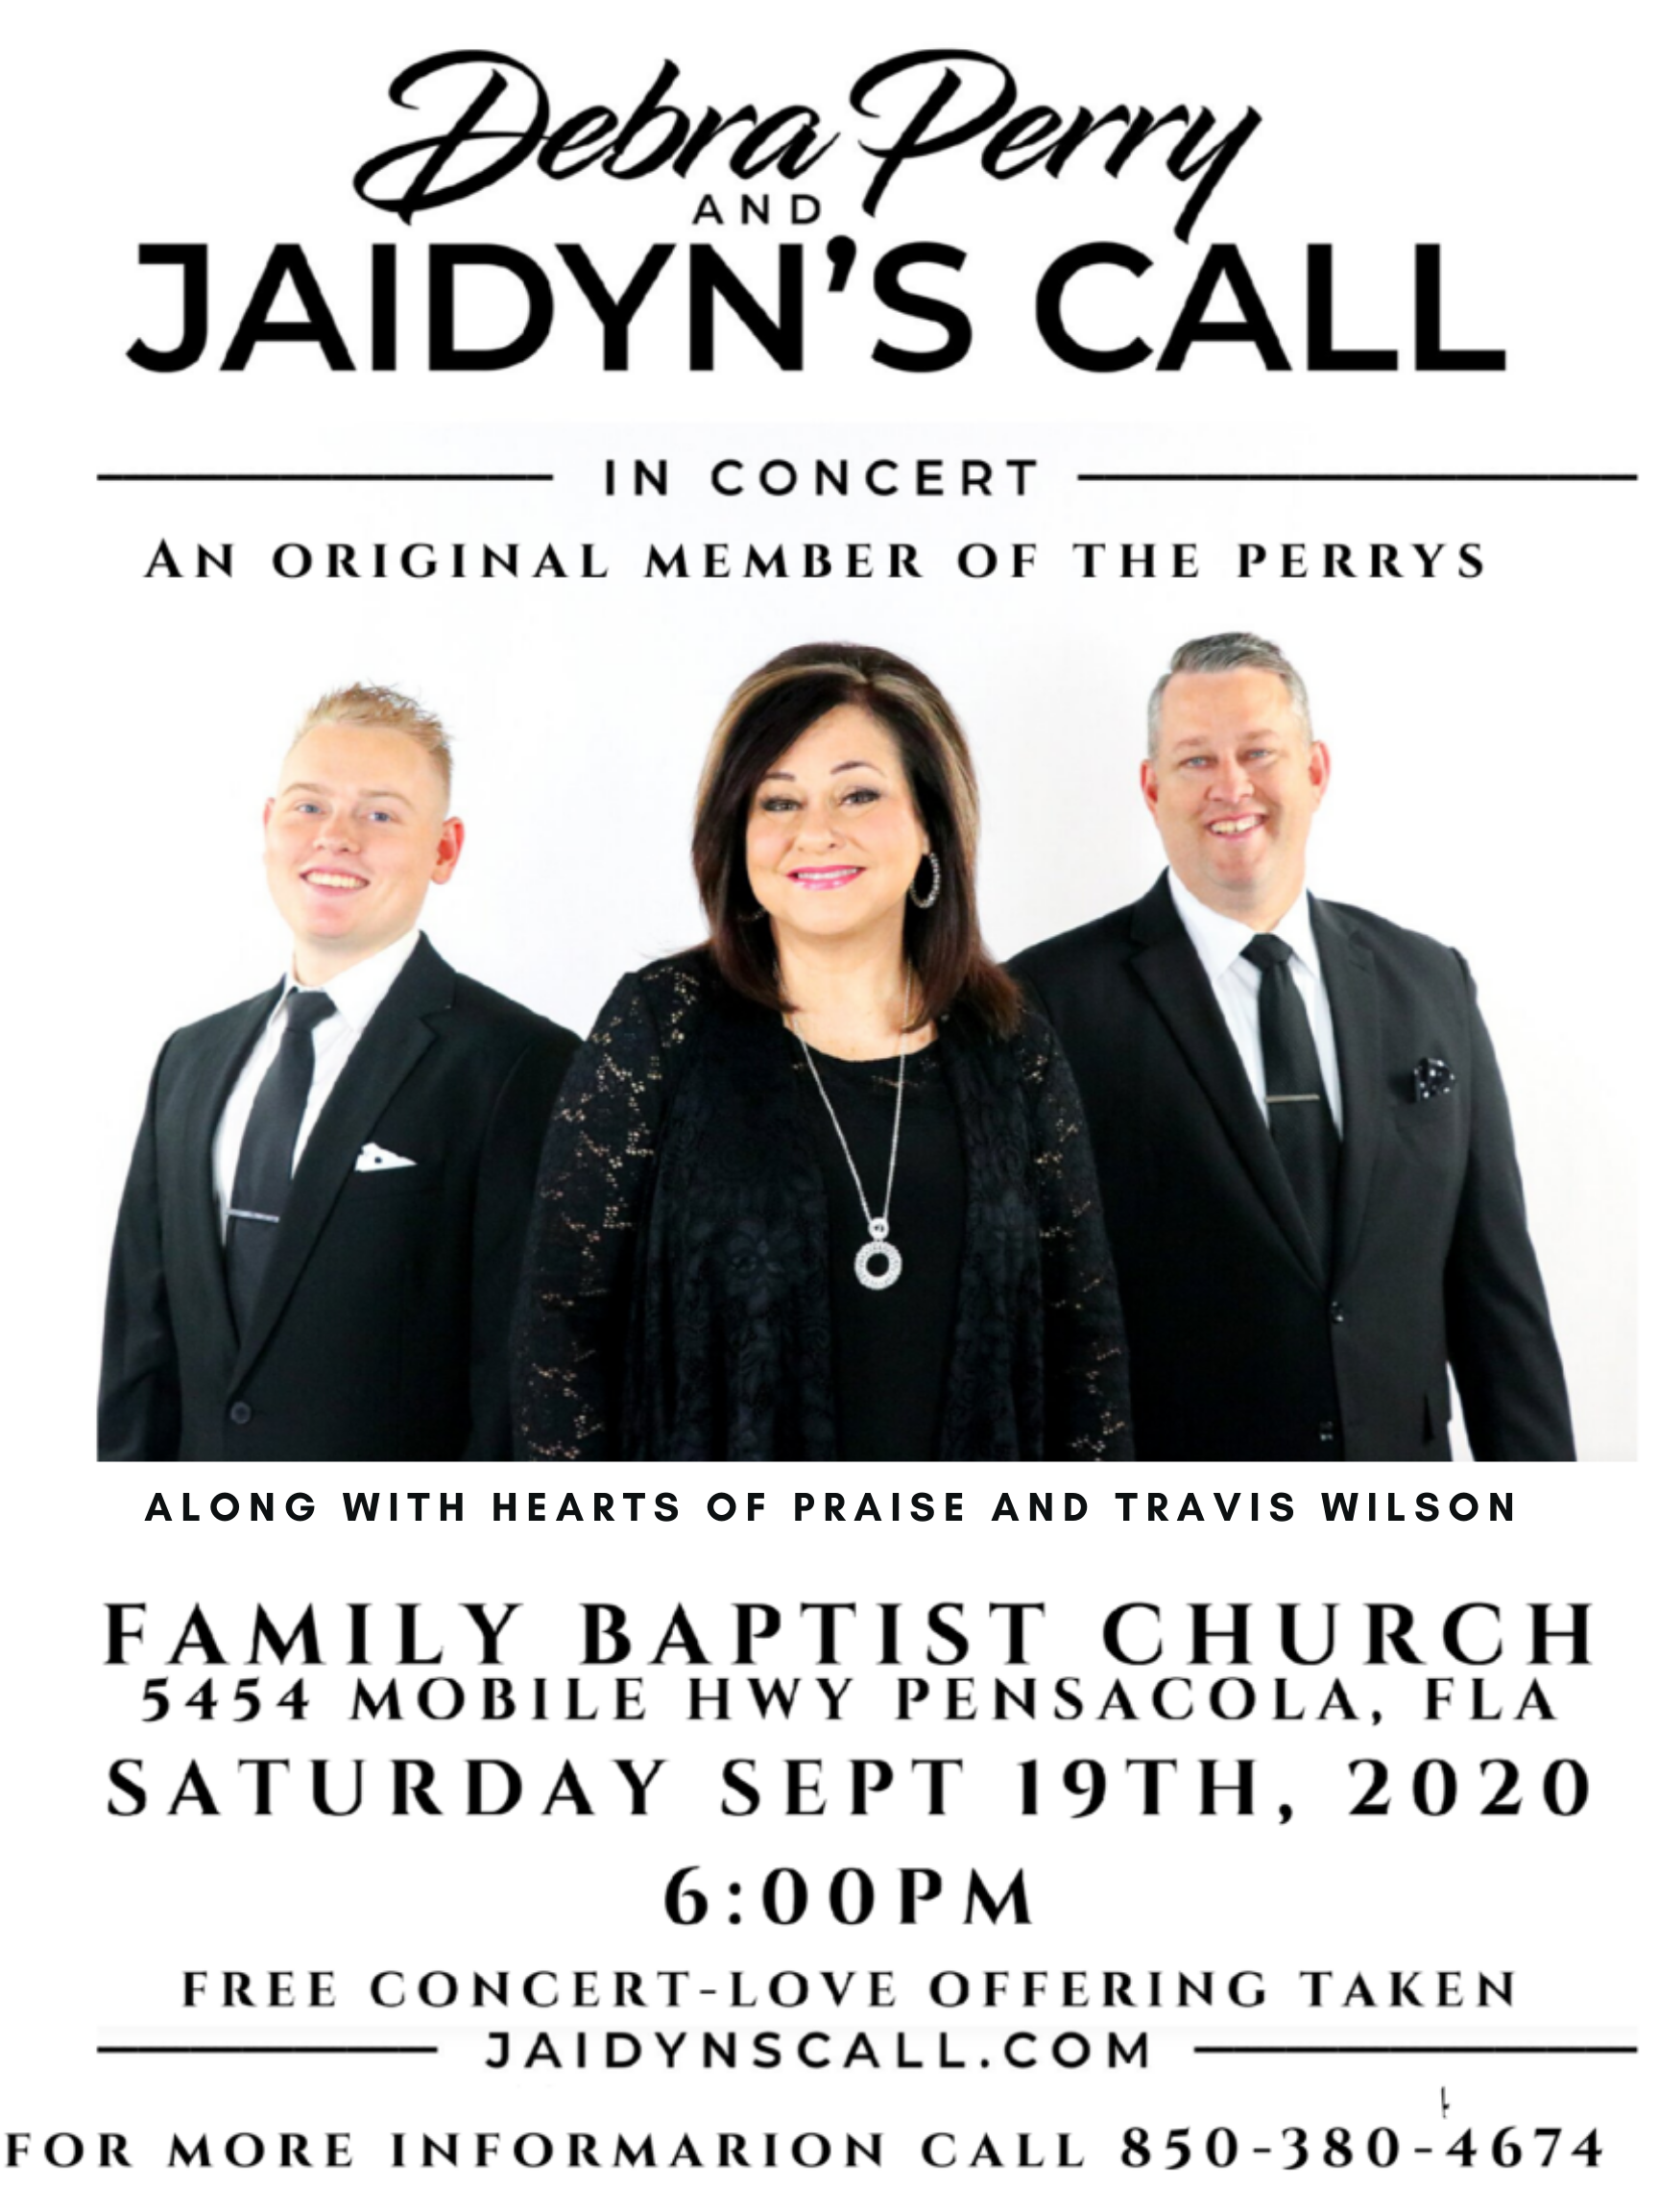 HeartRight Productions Presents Debra Perry and Jaidyn's Call